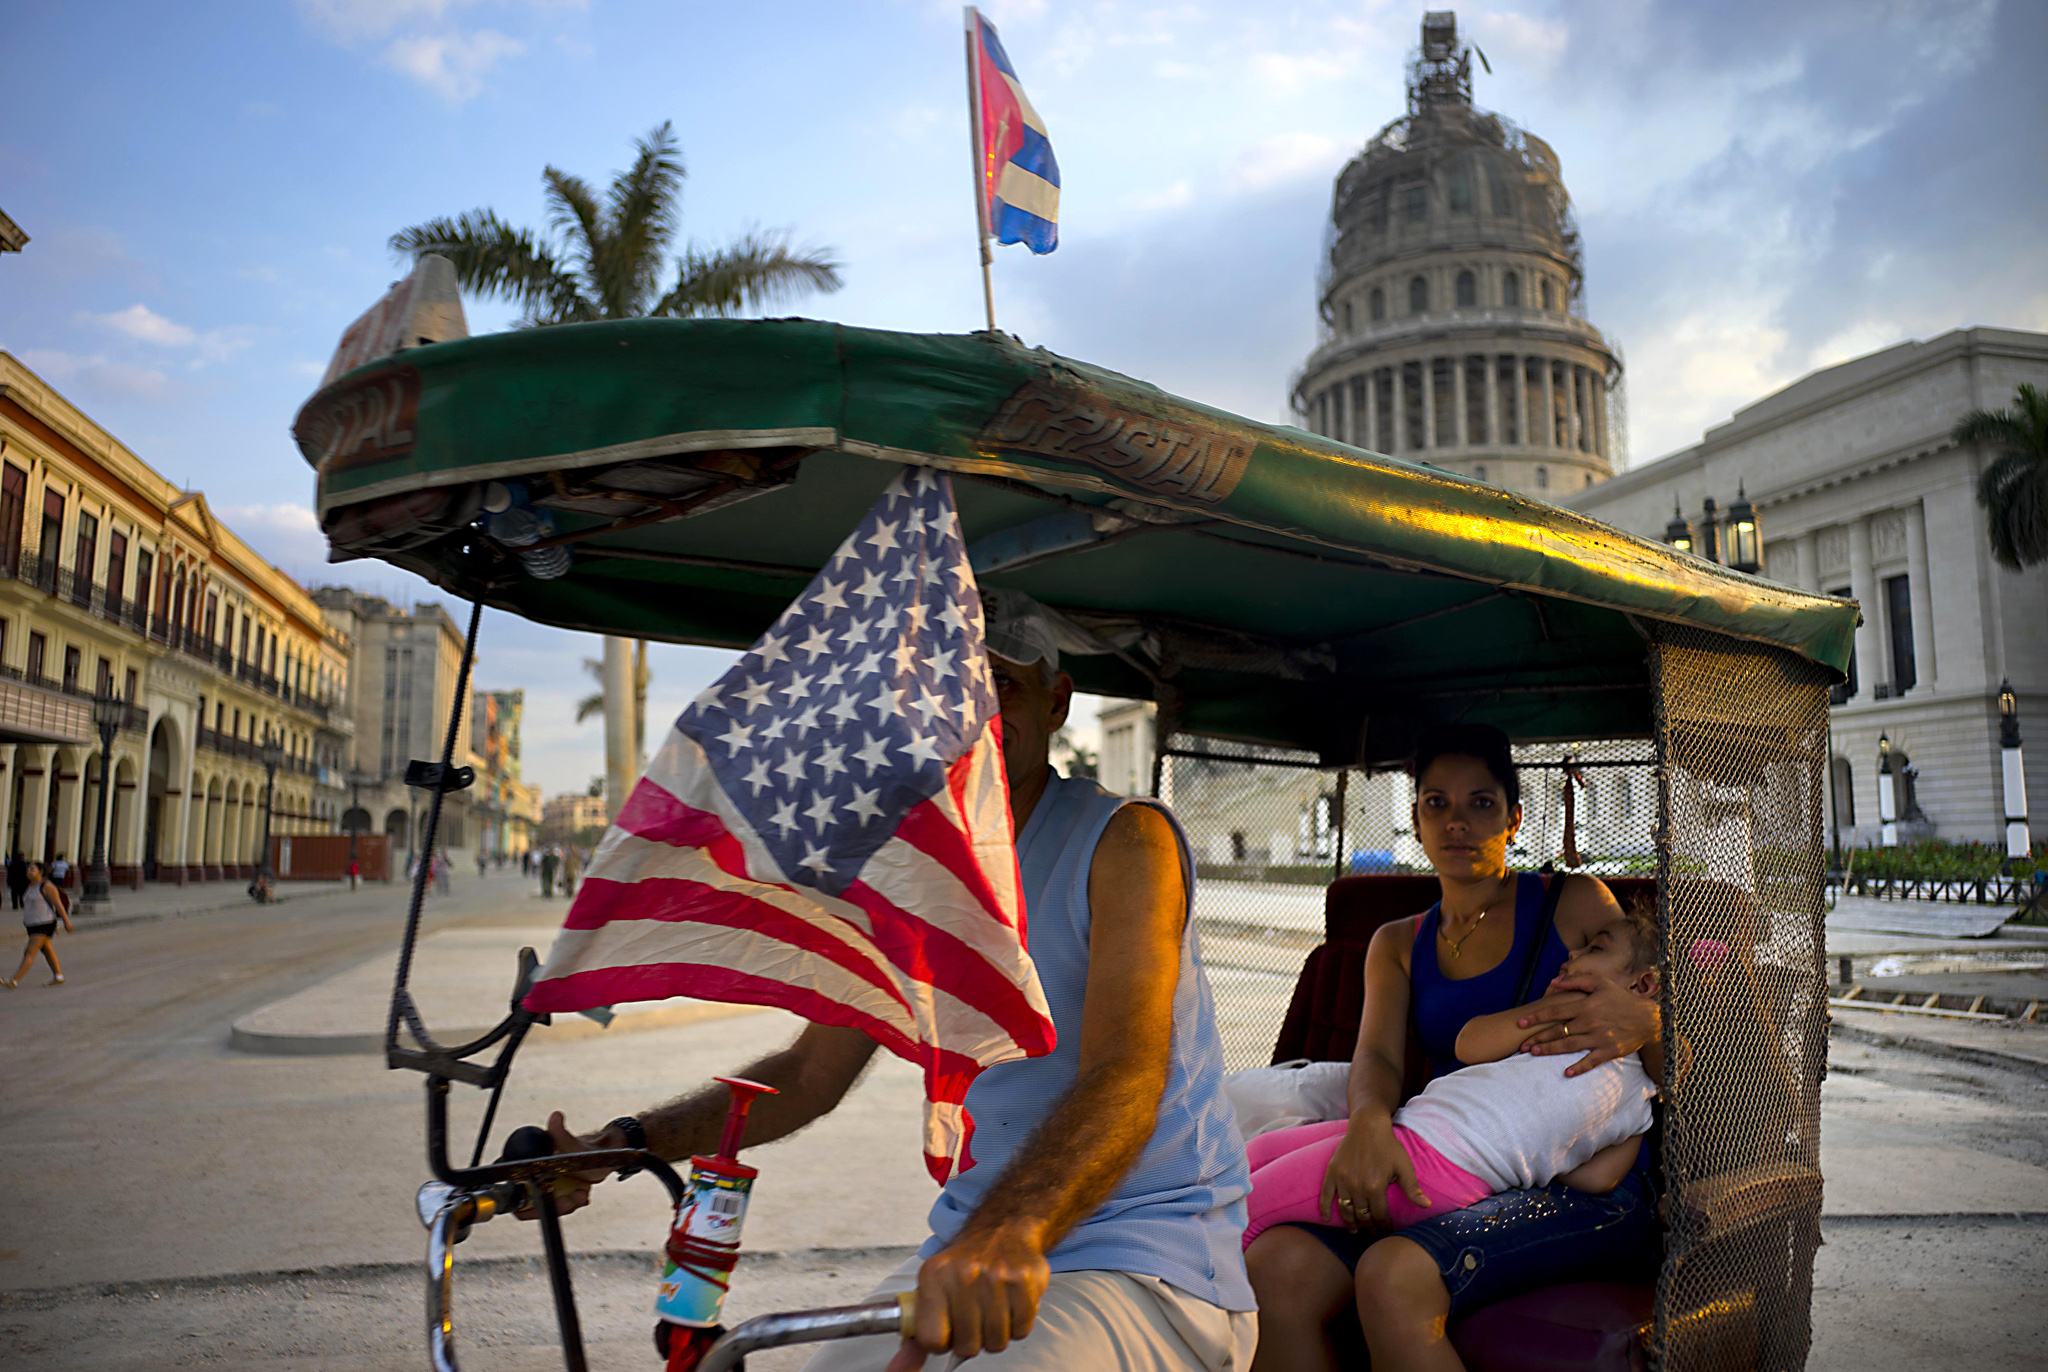 A taxi pedals his bicycle, decorated with Cuban and U.S. flags, as he transports a woman holding a sleeping girl, near the Capitolio in Havana, Cuba, Tuesday, March 15, 2016. President Barack Obama will travel to Cuba on March 20. (AP Photo/Ramon Espinosa)